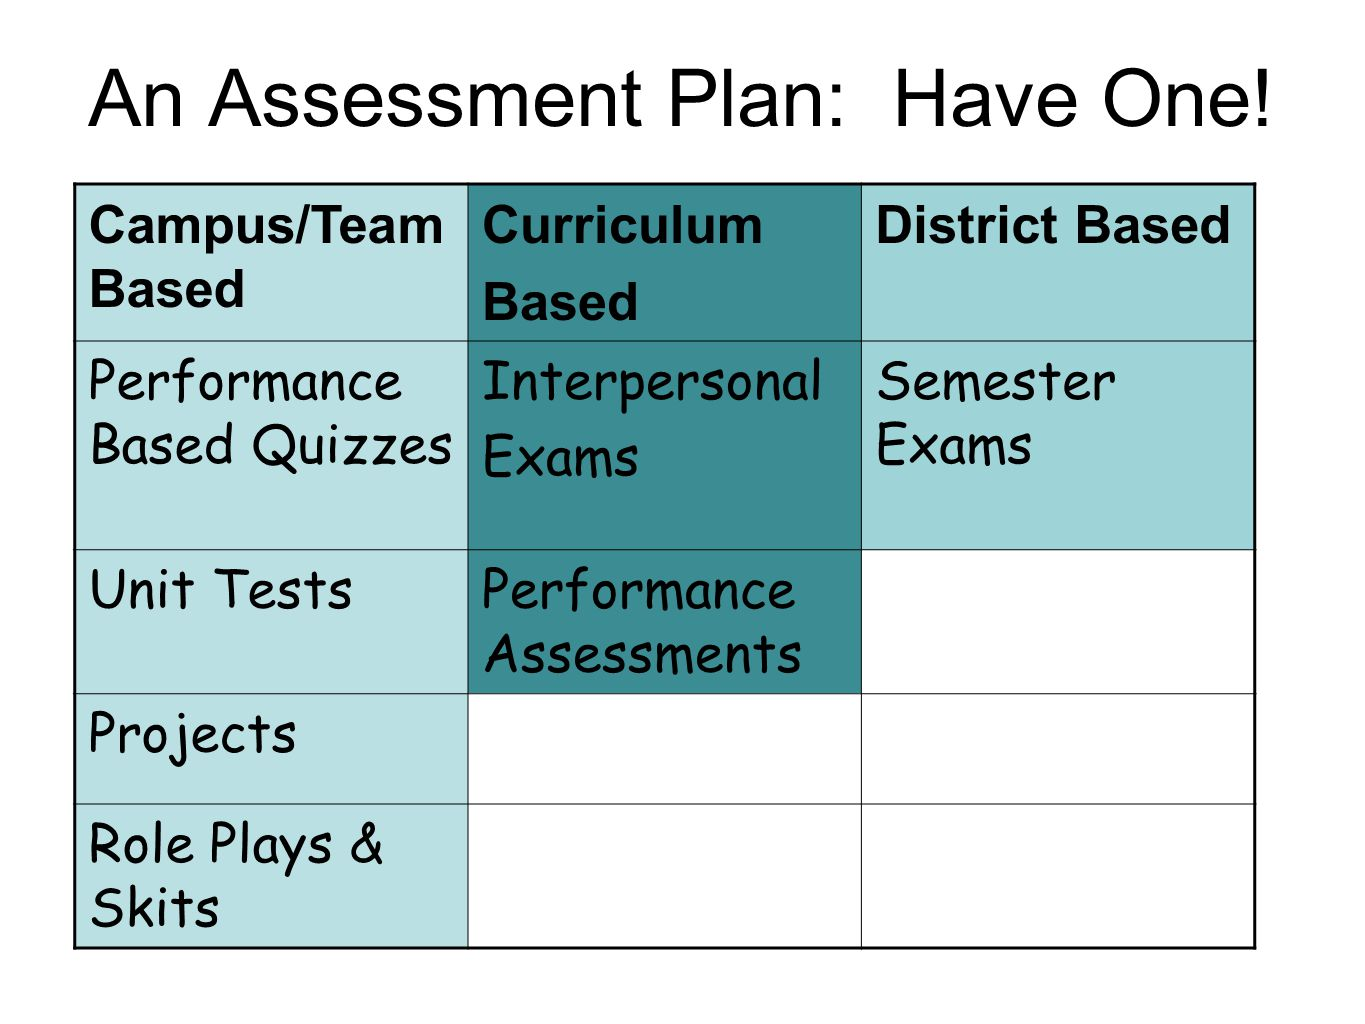 An Assessment Plan: Have One! Campus/Team Based Curriculum Based District Based Performance Based Quizzes Interpersonal Exams Semester Exams Unit Test